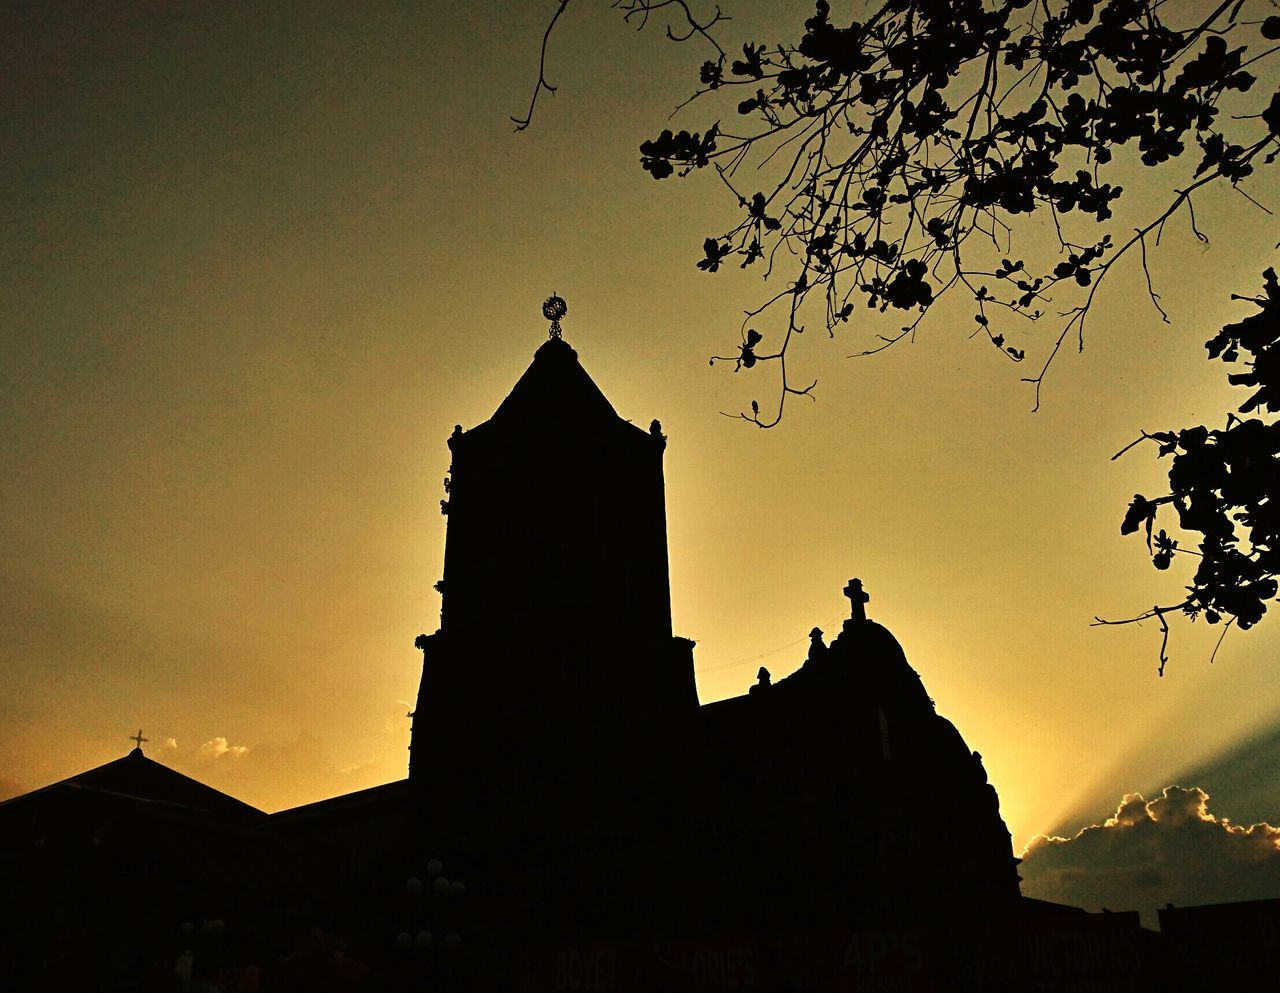 Eyeemphotography EyeemPhilippines Lenten2016 Church Silouette And Shadows Belltower